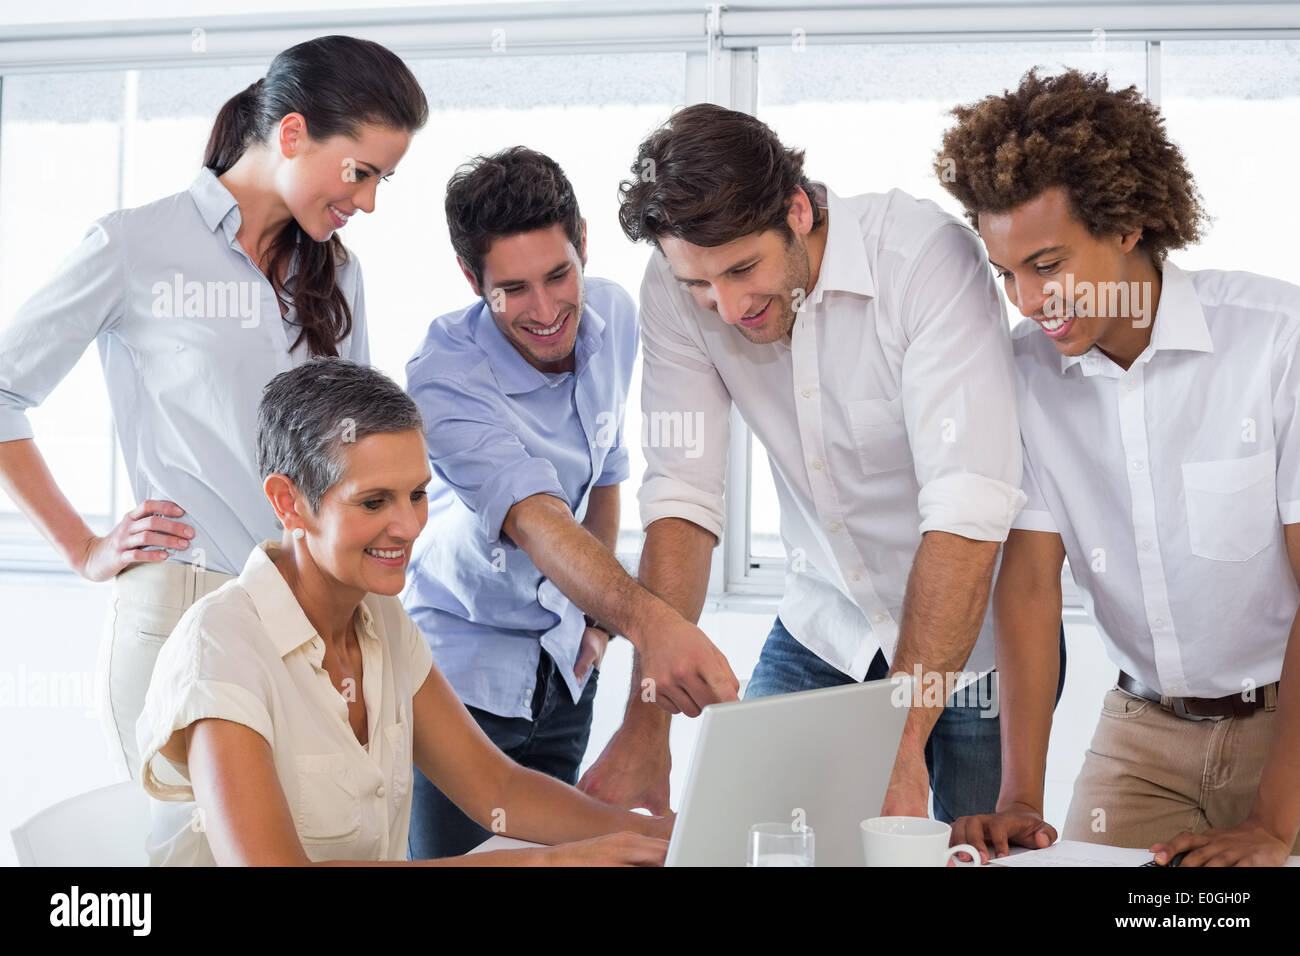 Business people working together on laptop Stock Photo - Alamy